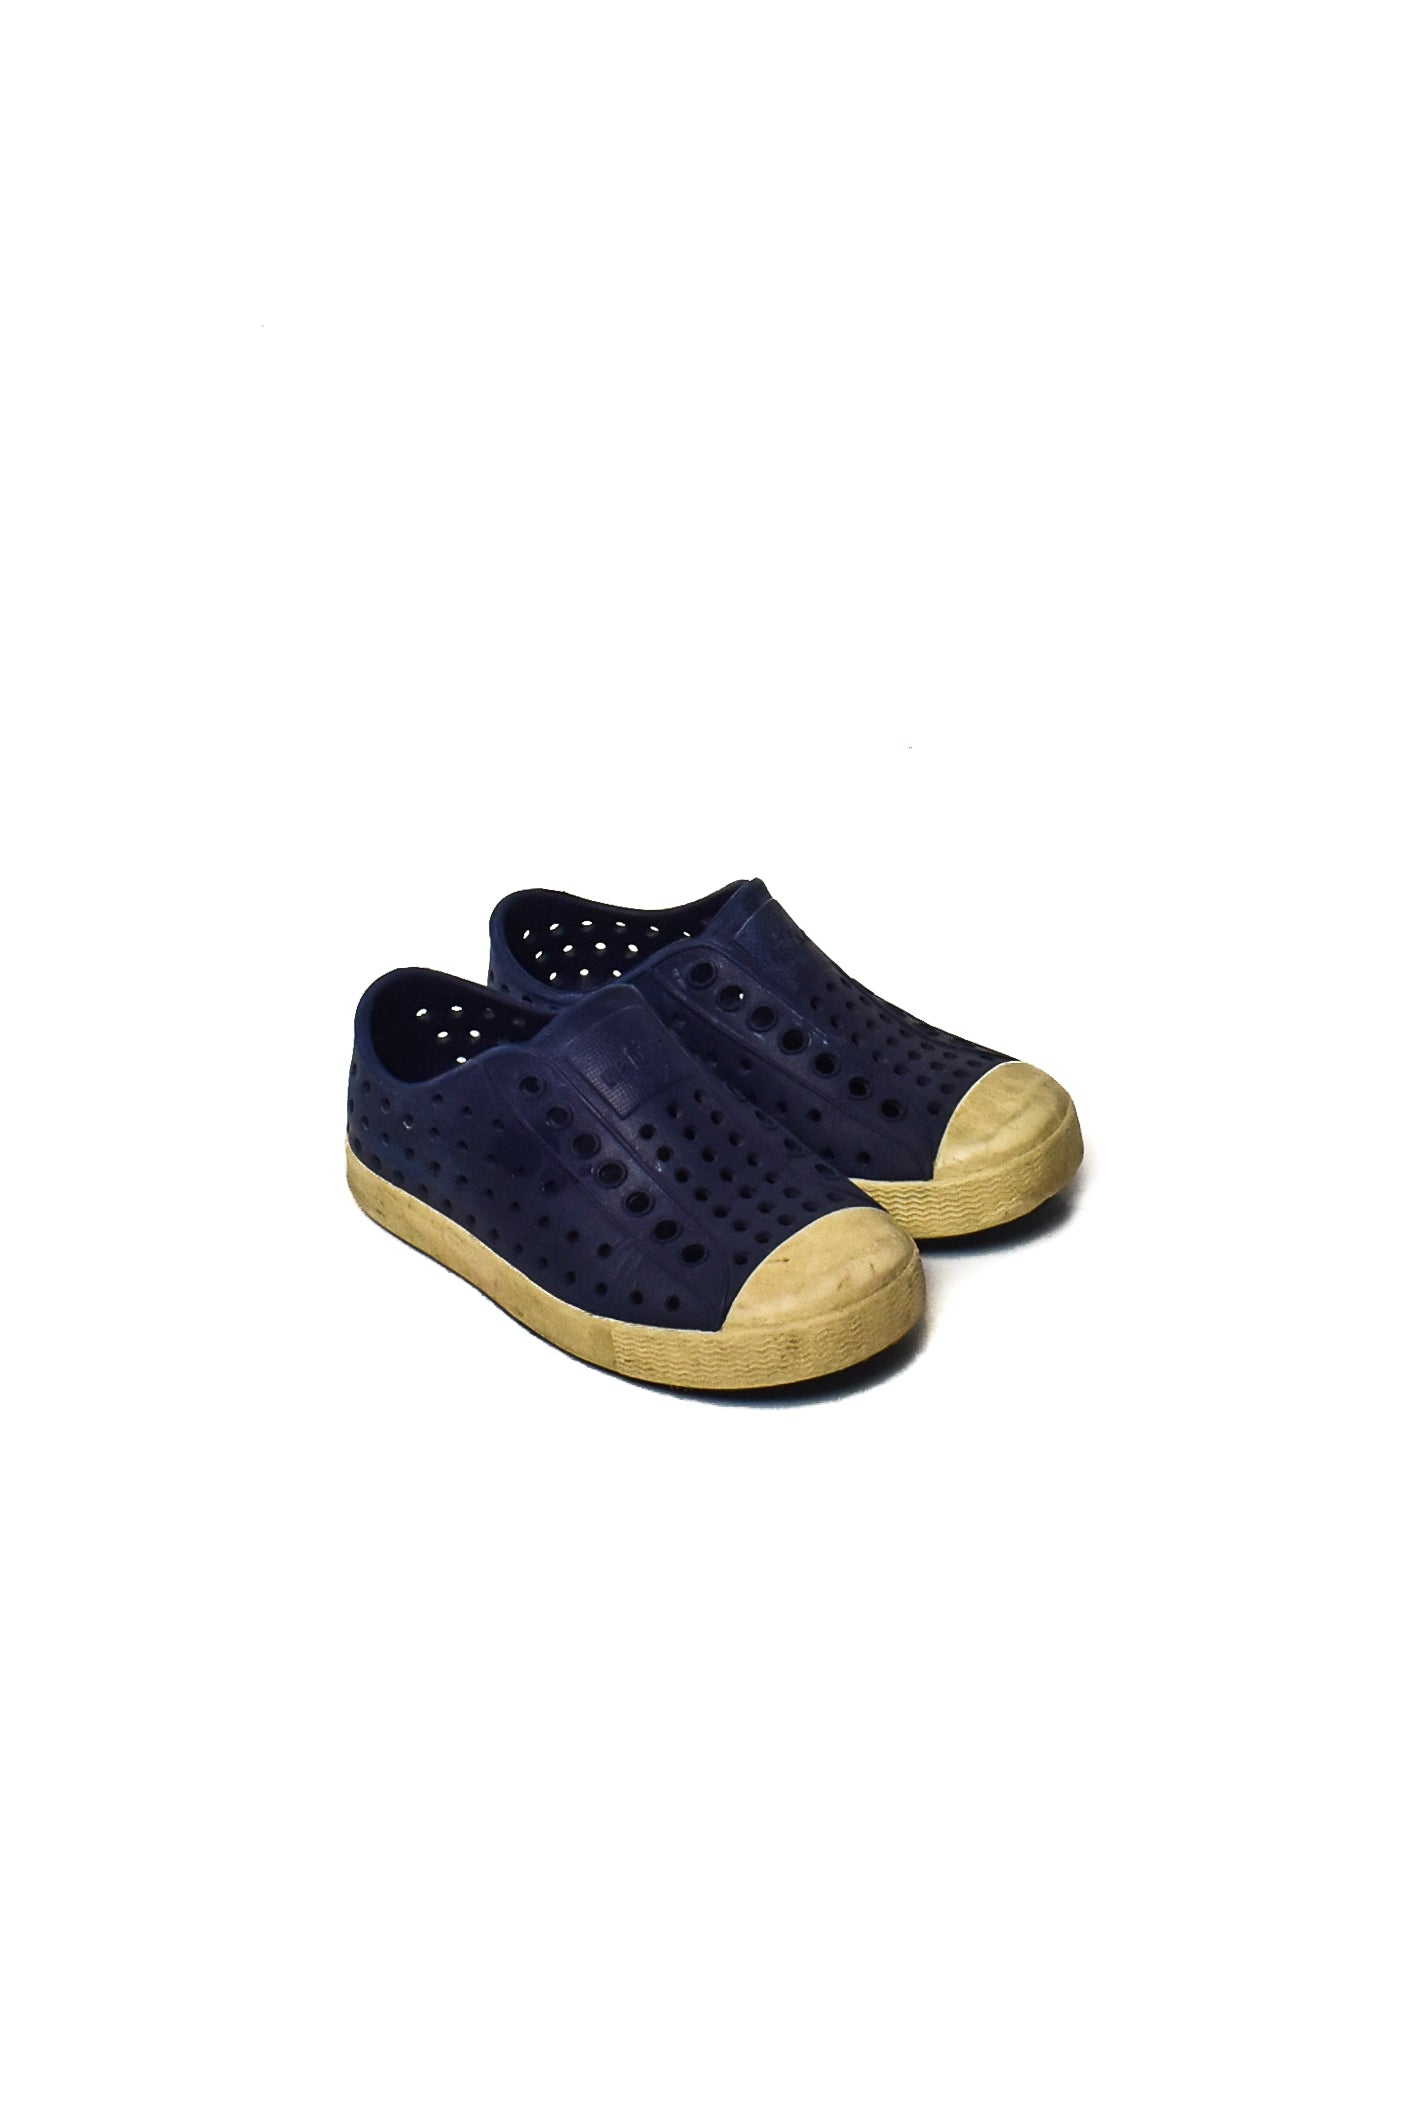 10006960 Native Shoes Baby~ Shoes US 7 at Retykle